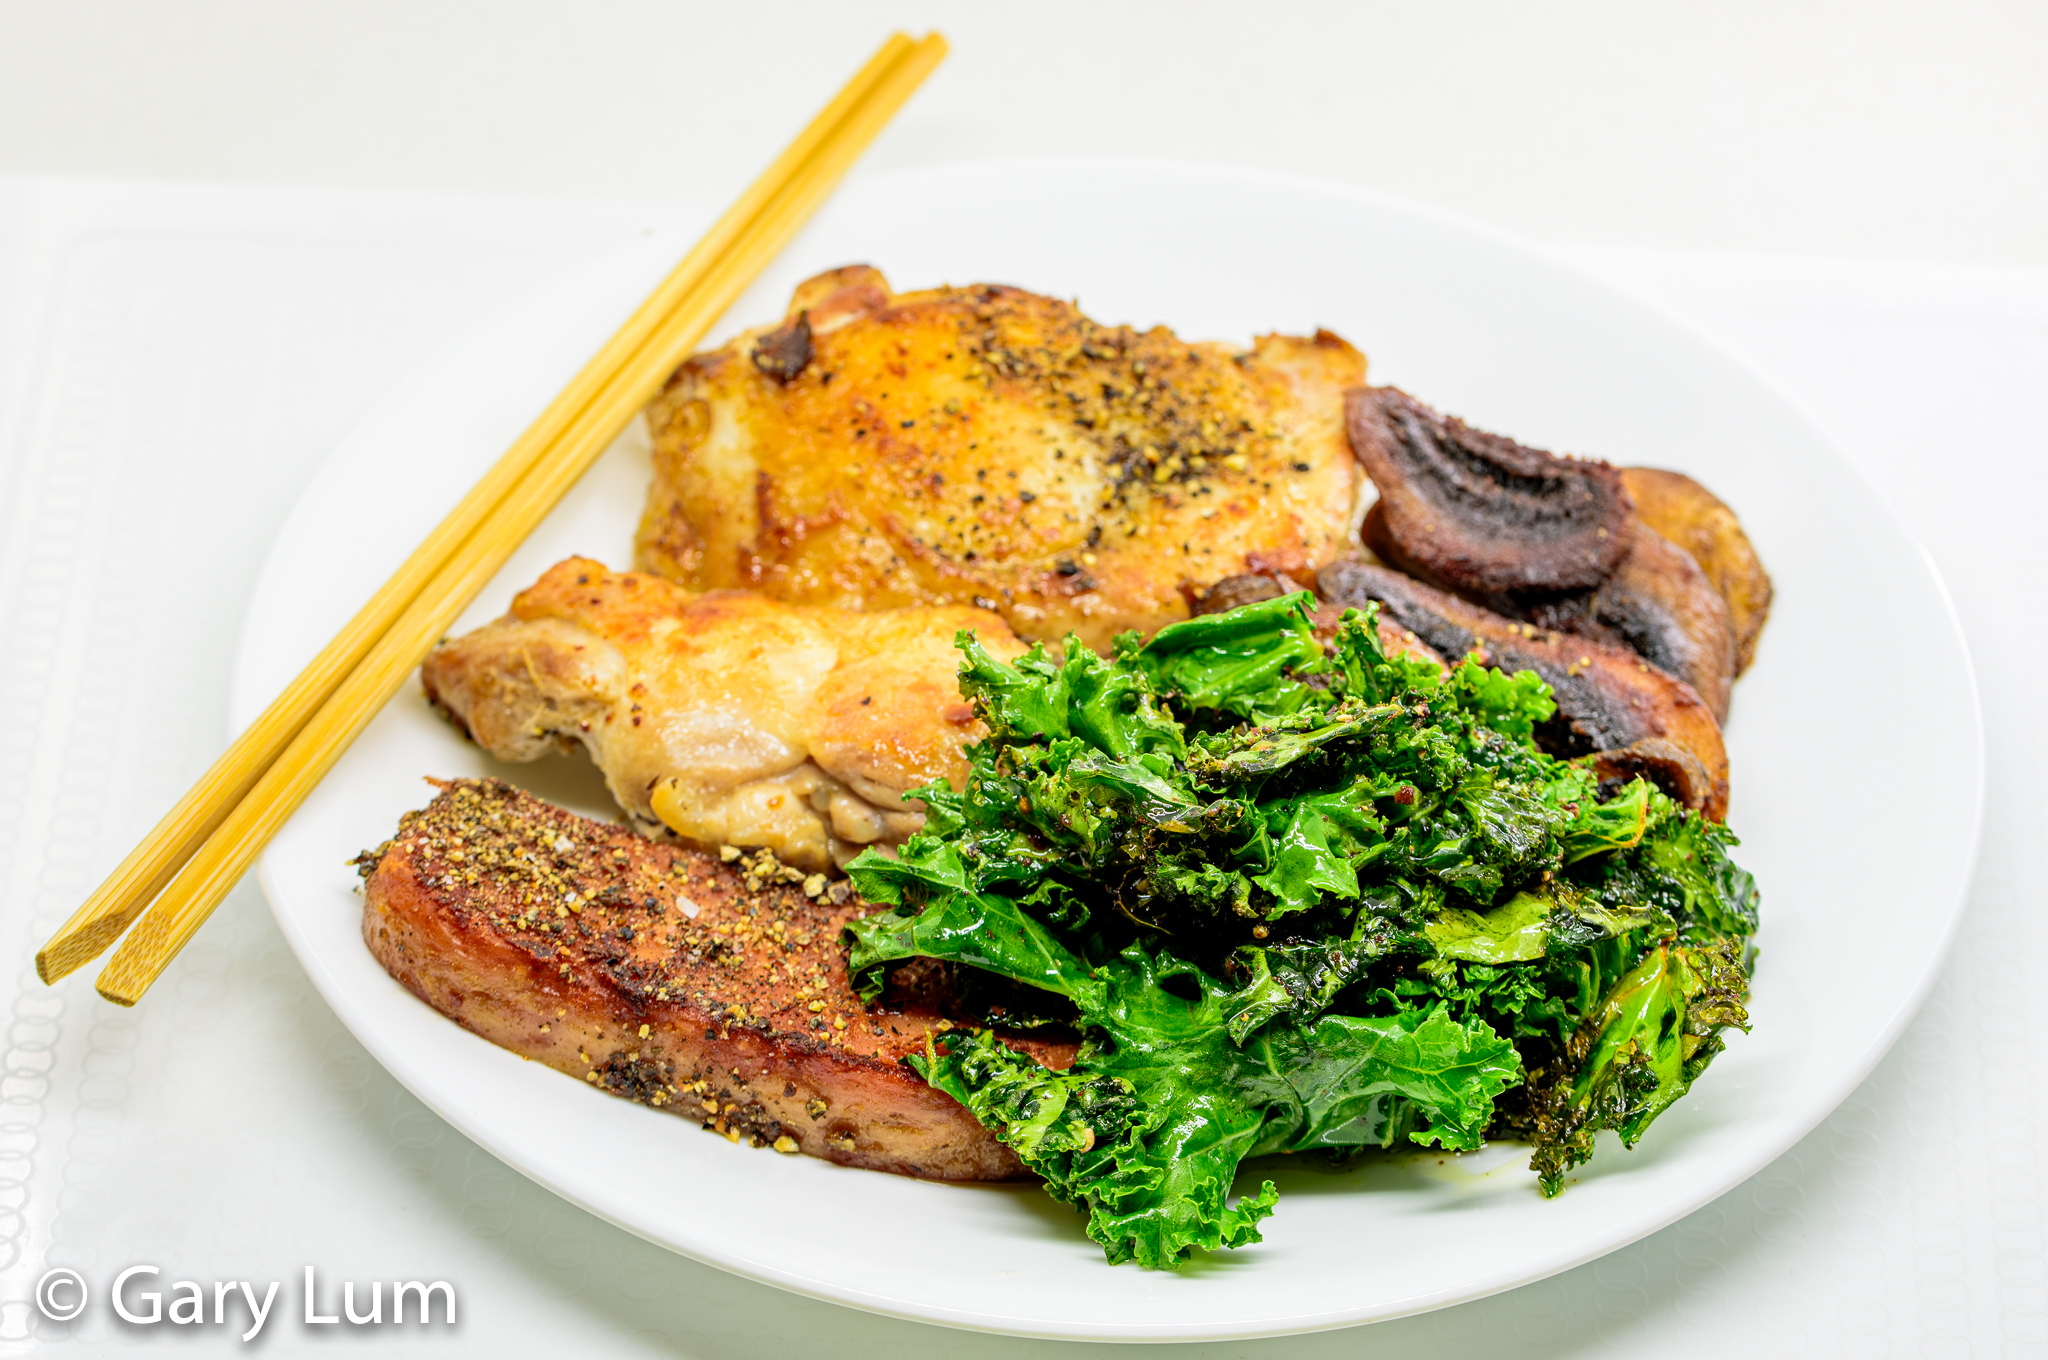 Pan-fried deboned chicken thigh and drumstick with Spam, mushrooms, and kale. Gary Lum.